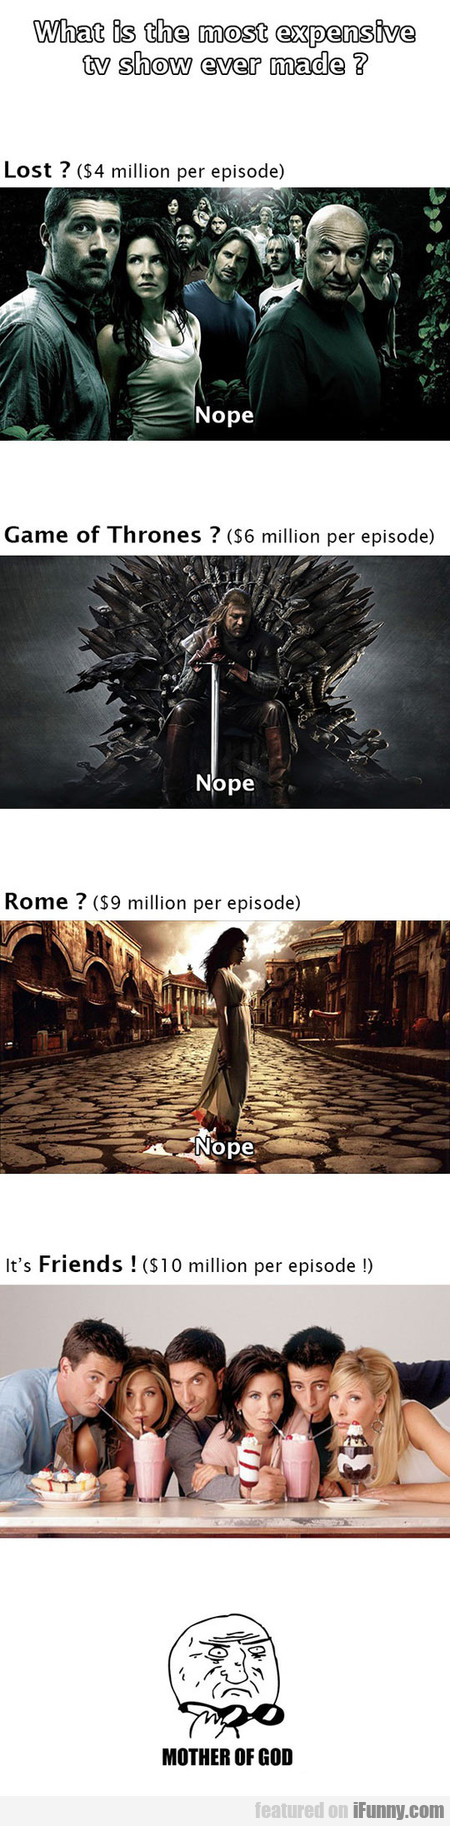 The Most Expensive Tv Show Ever Made